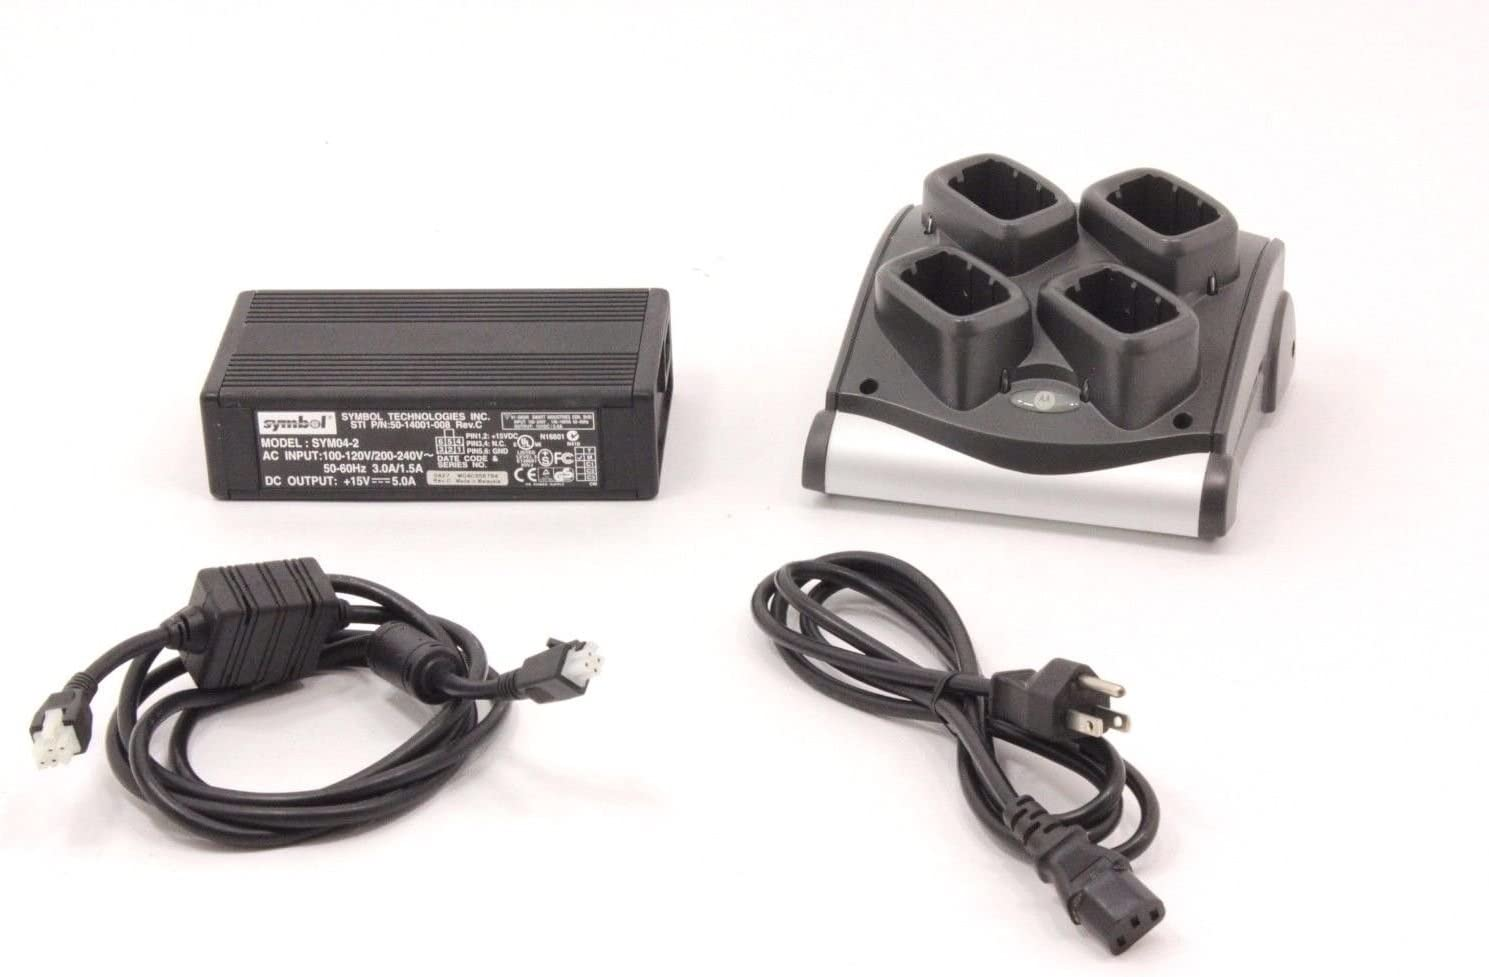 Includes Charger Power Supply DC Line Cord and AC Line Cord Symbol Motorola SAC9000-4000R 4-Slot Battery Charger Kit